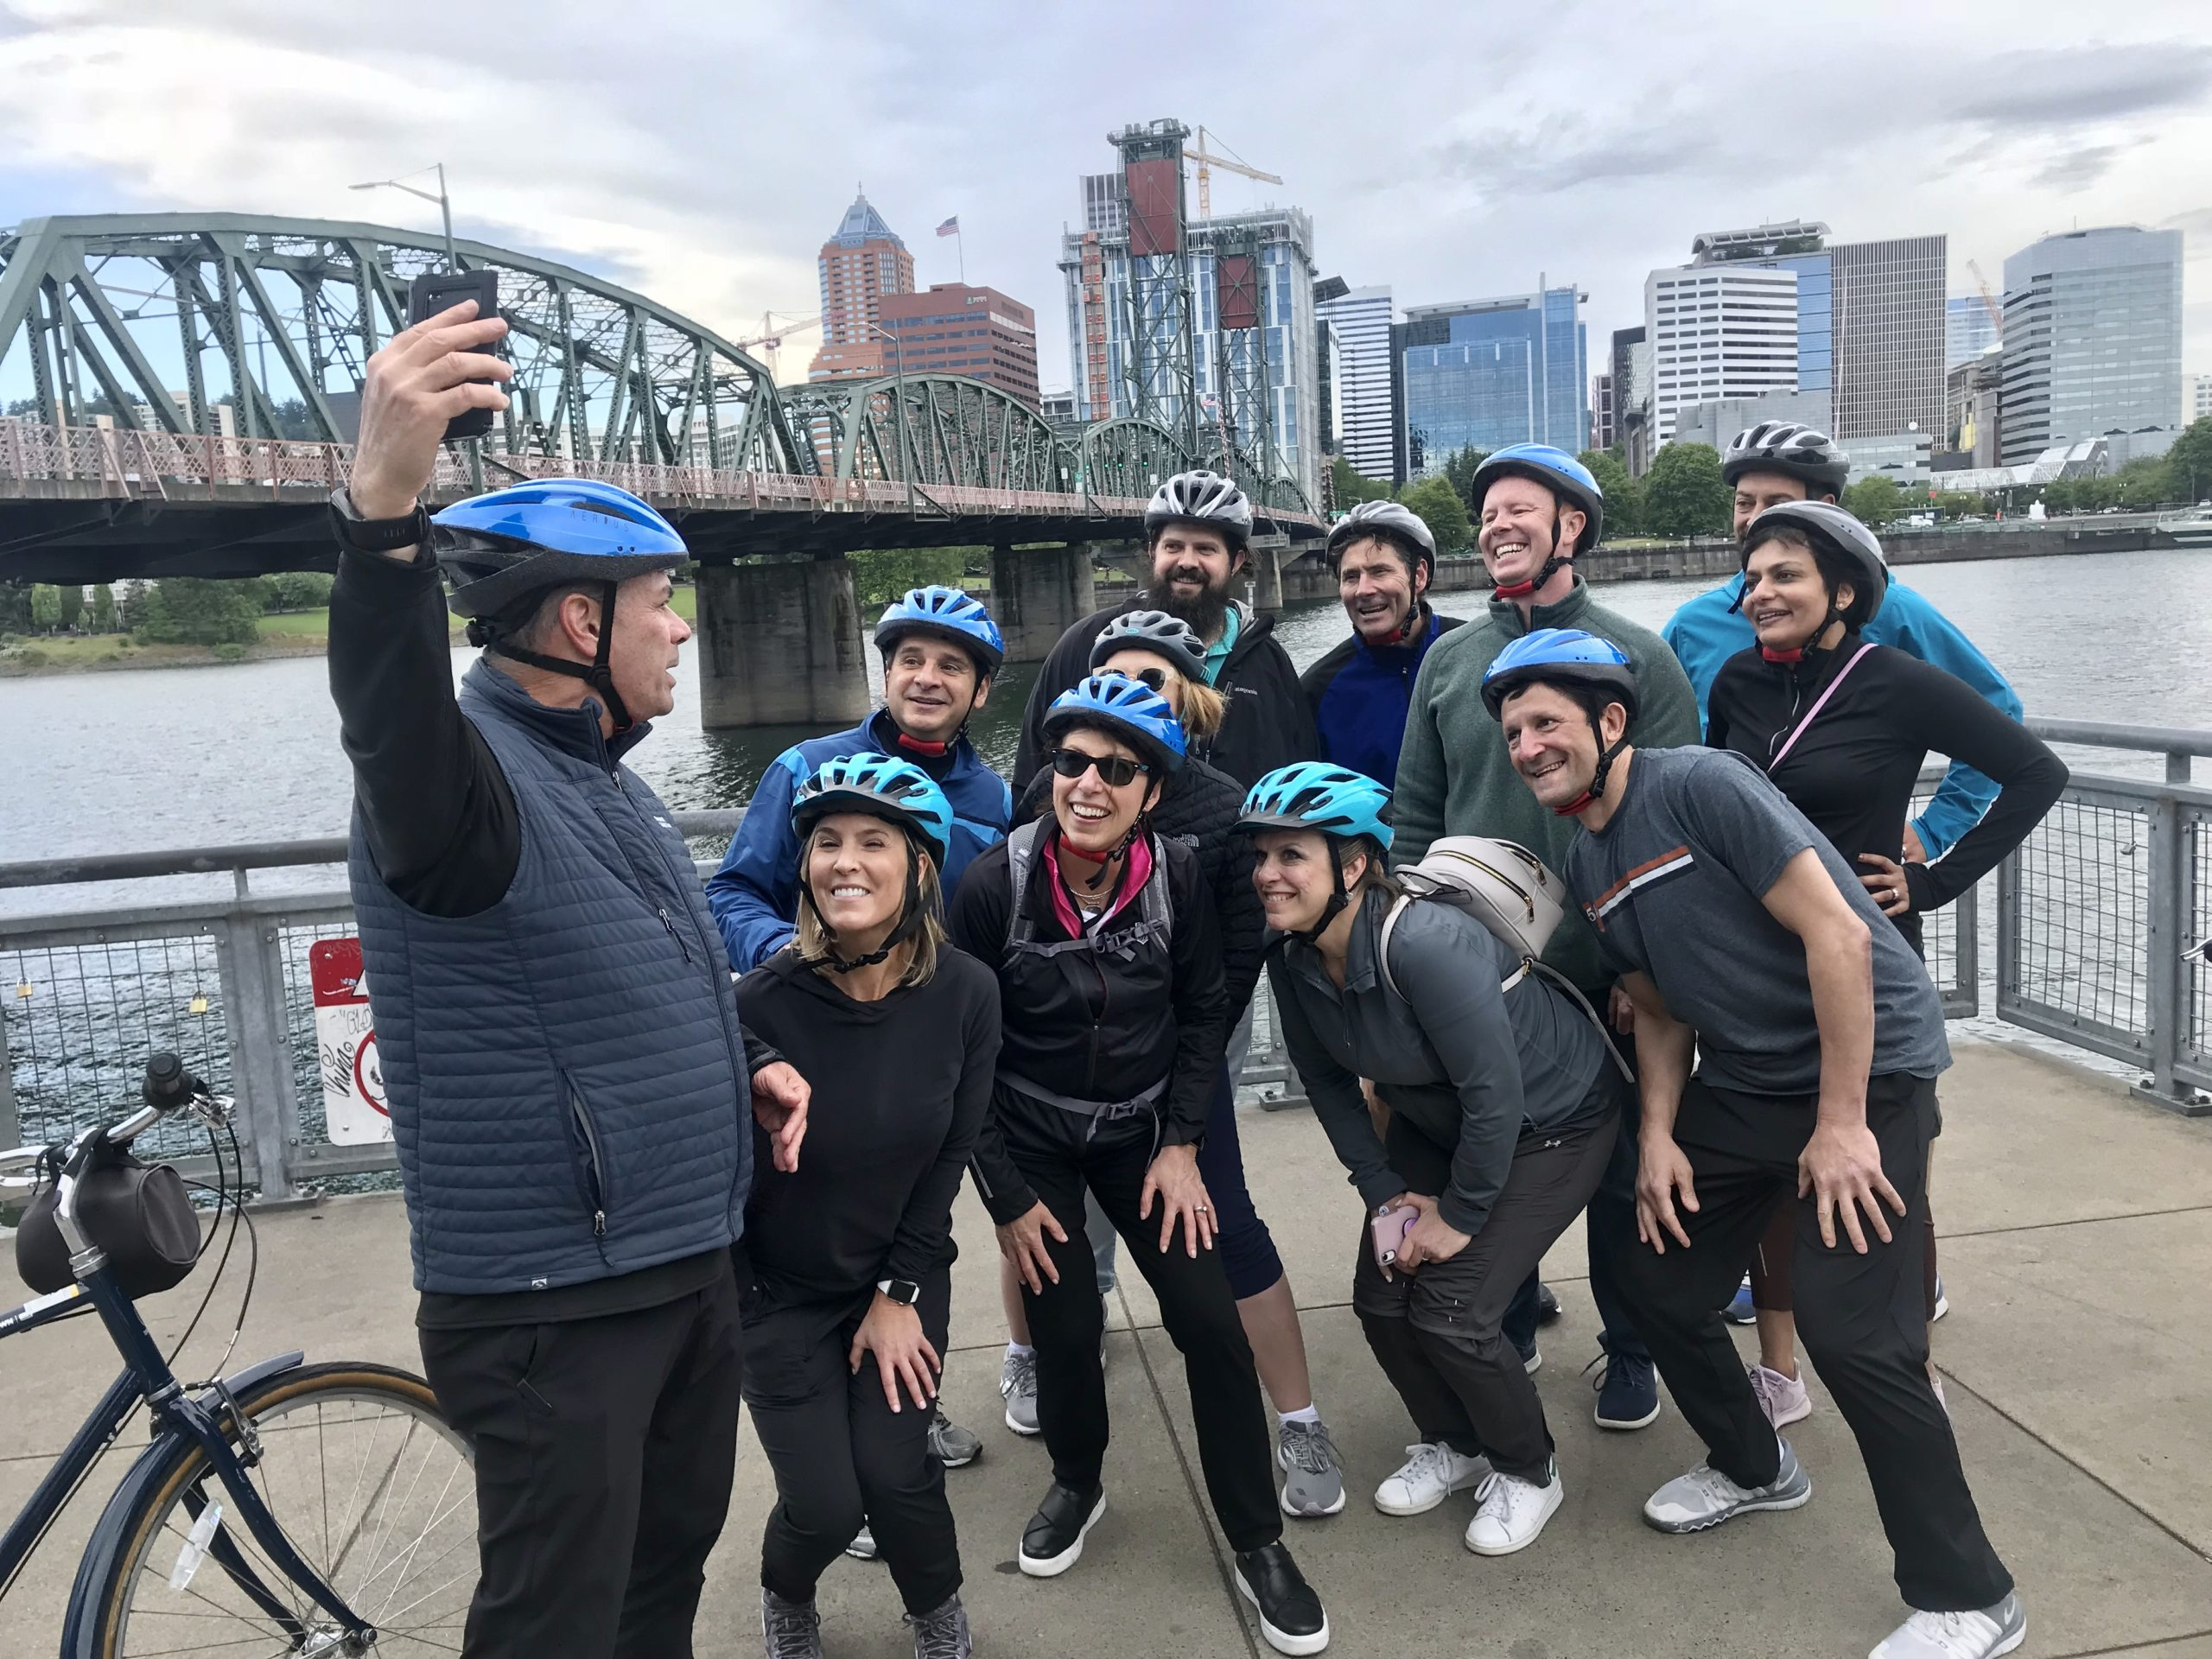 Bike tours of Portland